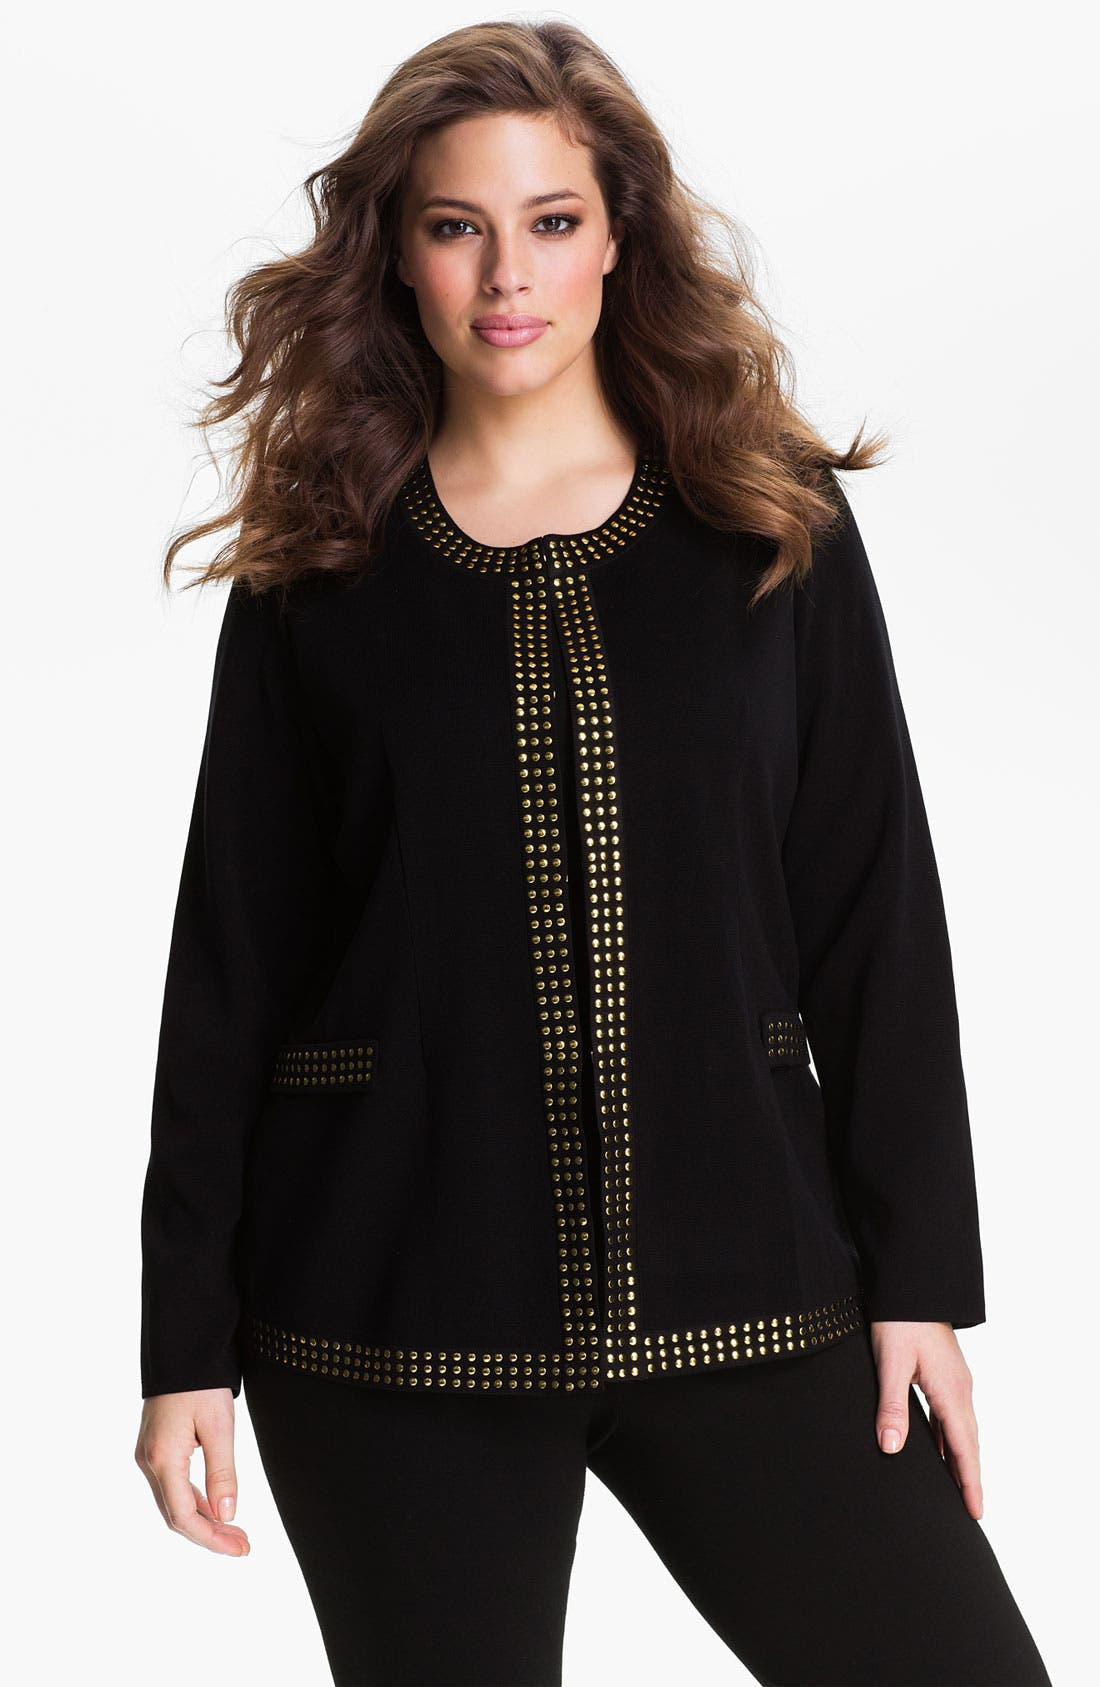 Alternate Image 1 Selected - Exclusively Misook Studded Jewel Neck Jacket (Plus)